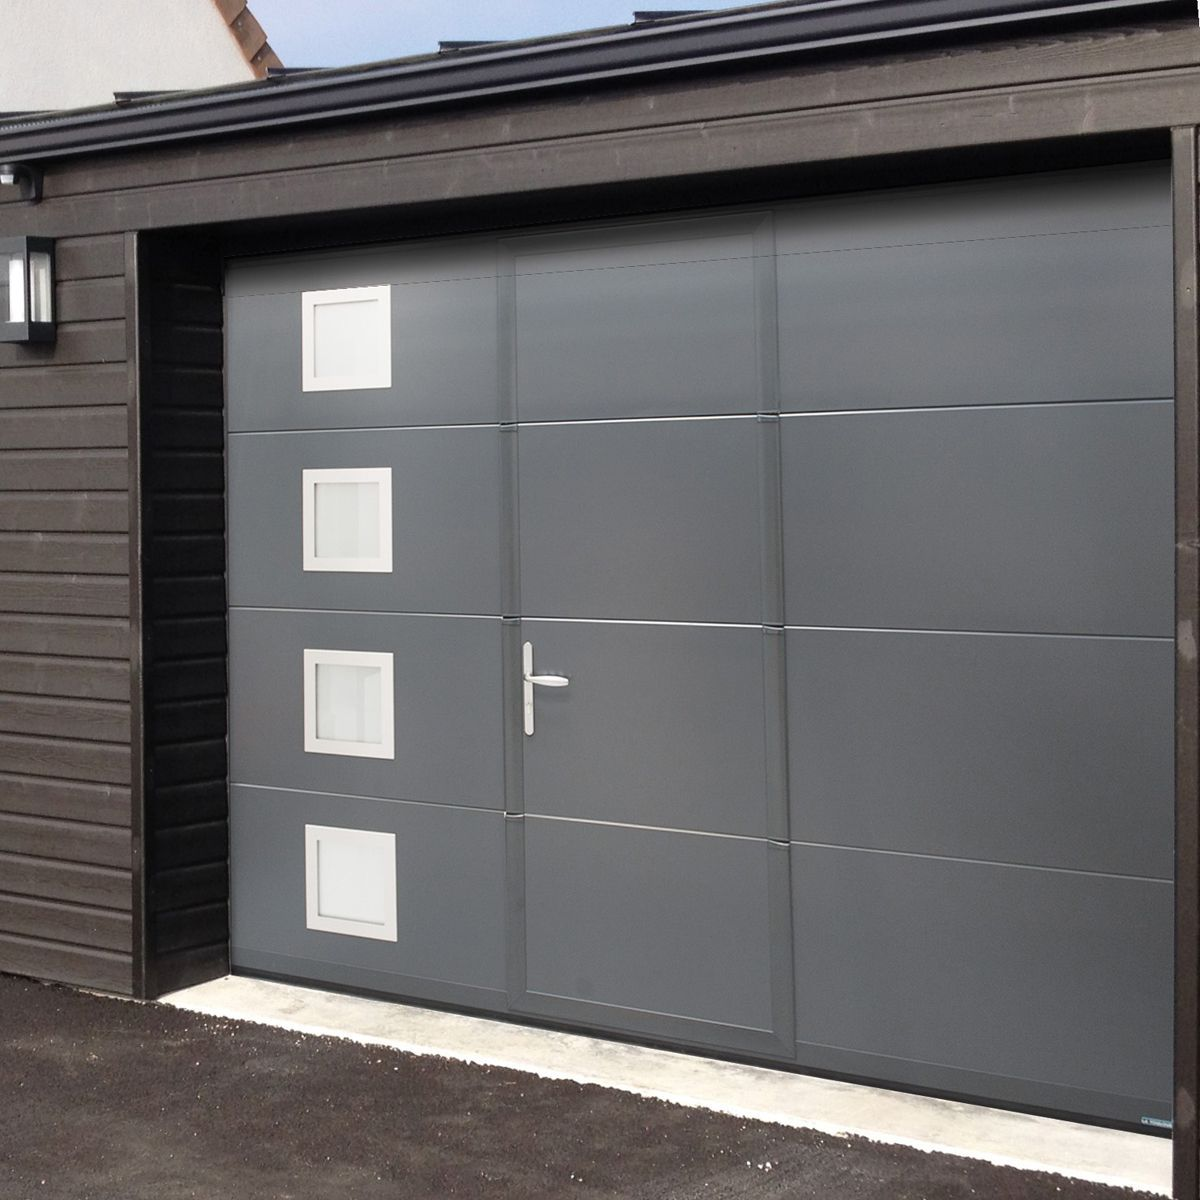 Portes de garage fabriqu es en france sur mesure isoferm for Porte de garage haute